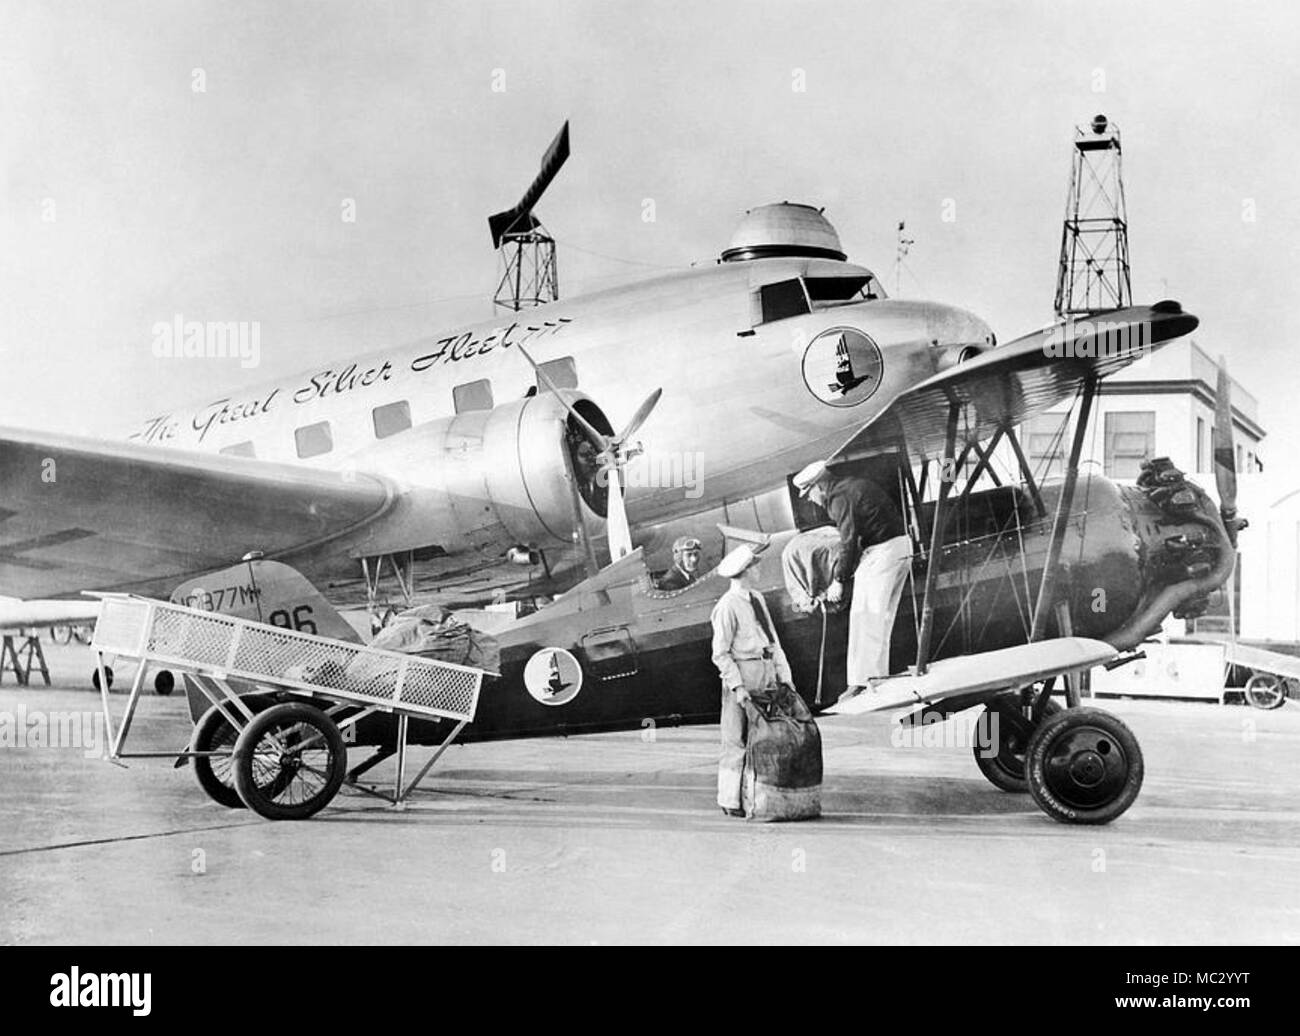 AIRMAIL carried in two of the Great Silver Fleet of aircraft in America 1935. Company became Eastern Airlines in later years. - Stock Image